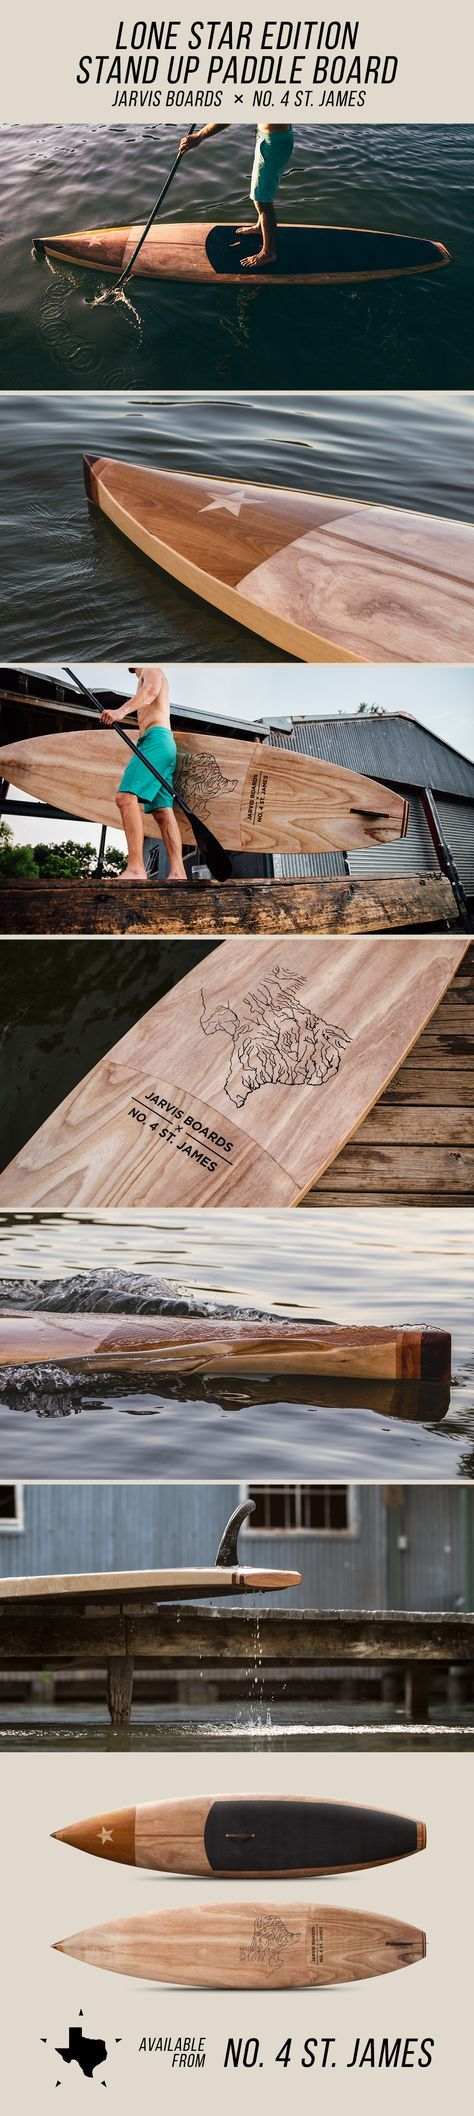 Deppen custom wood canoe paddles - Lone Star Edition Stand Up Paddle Board